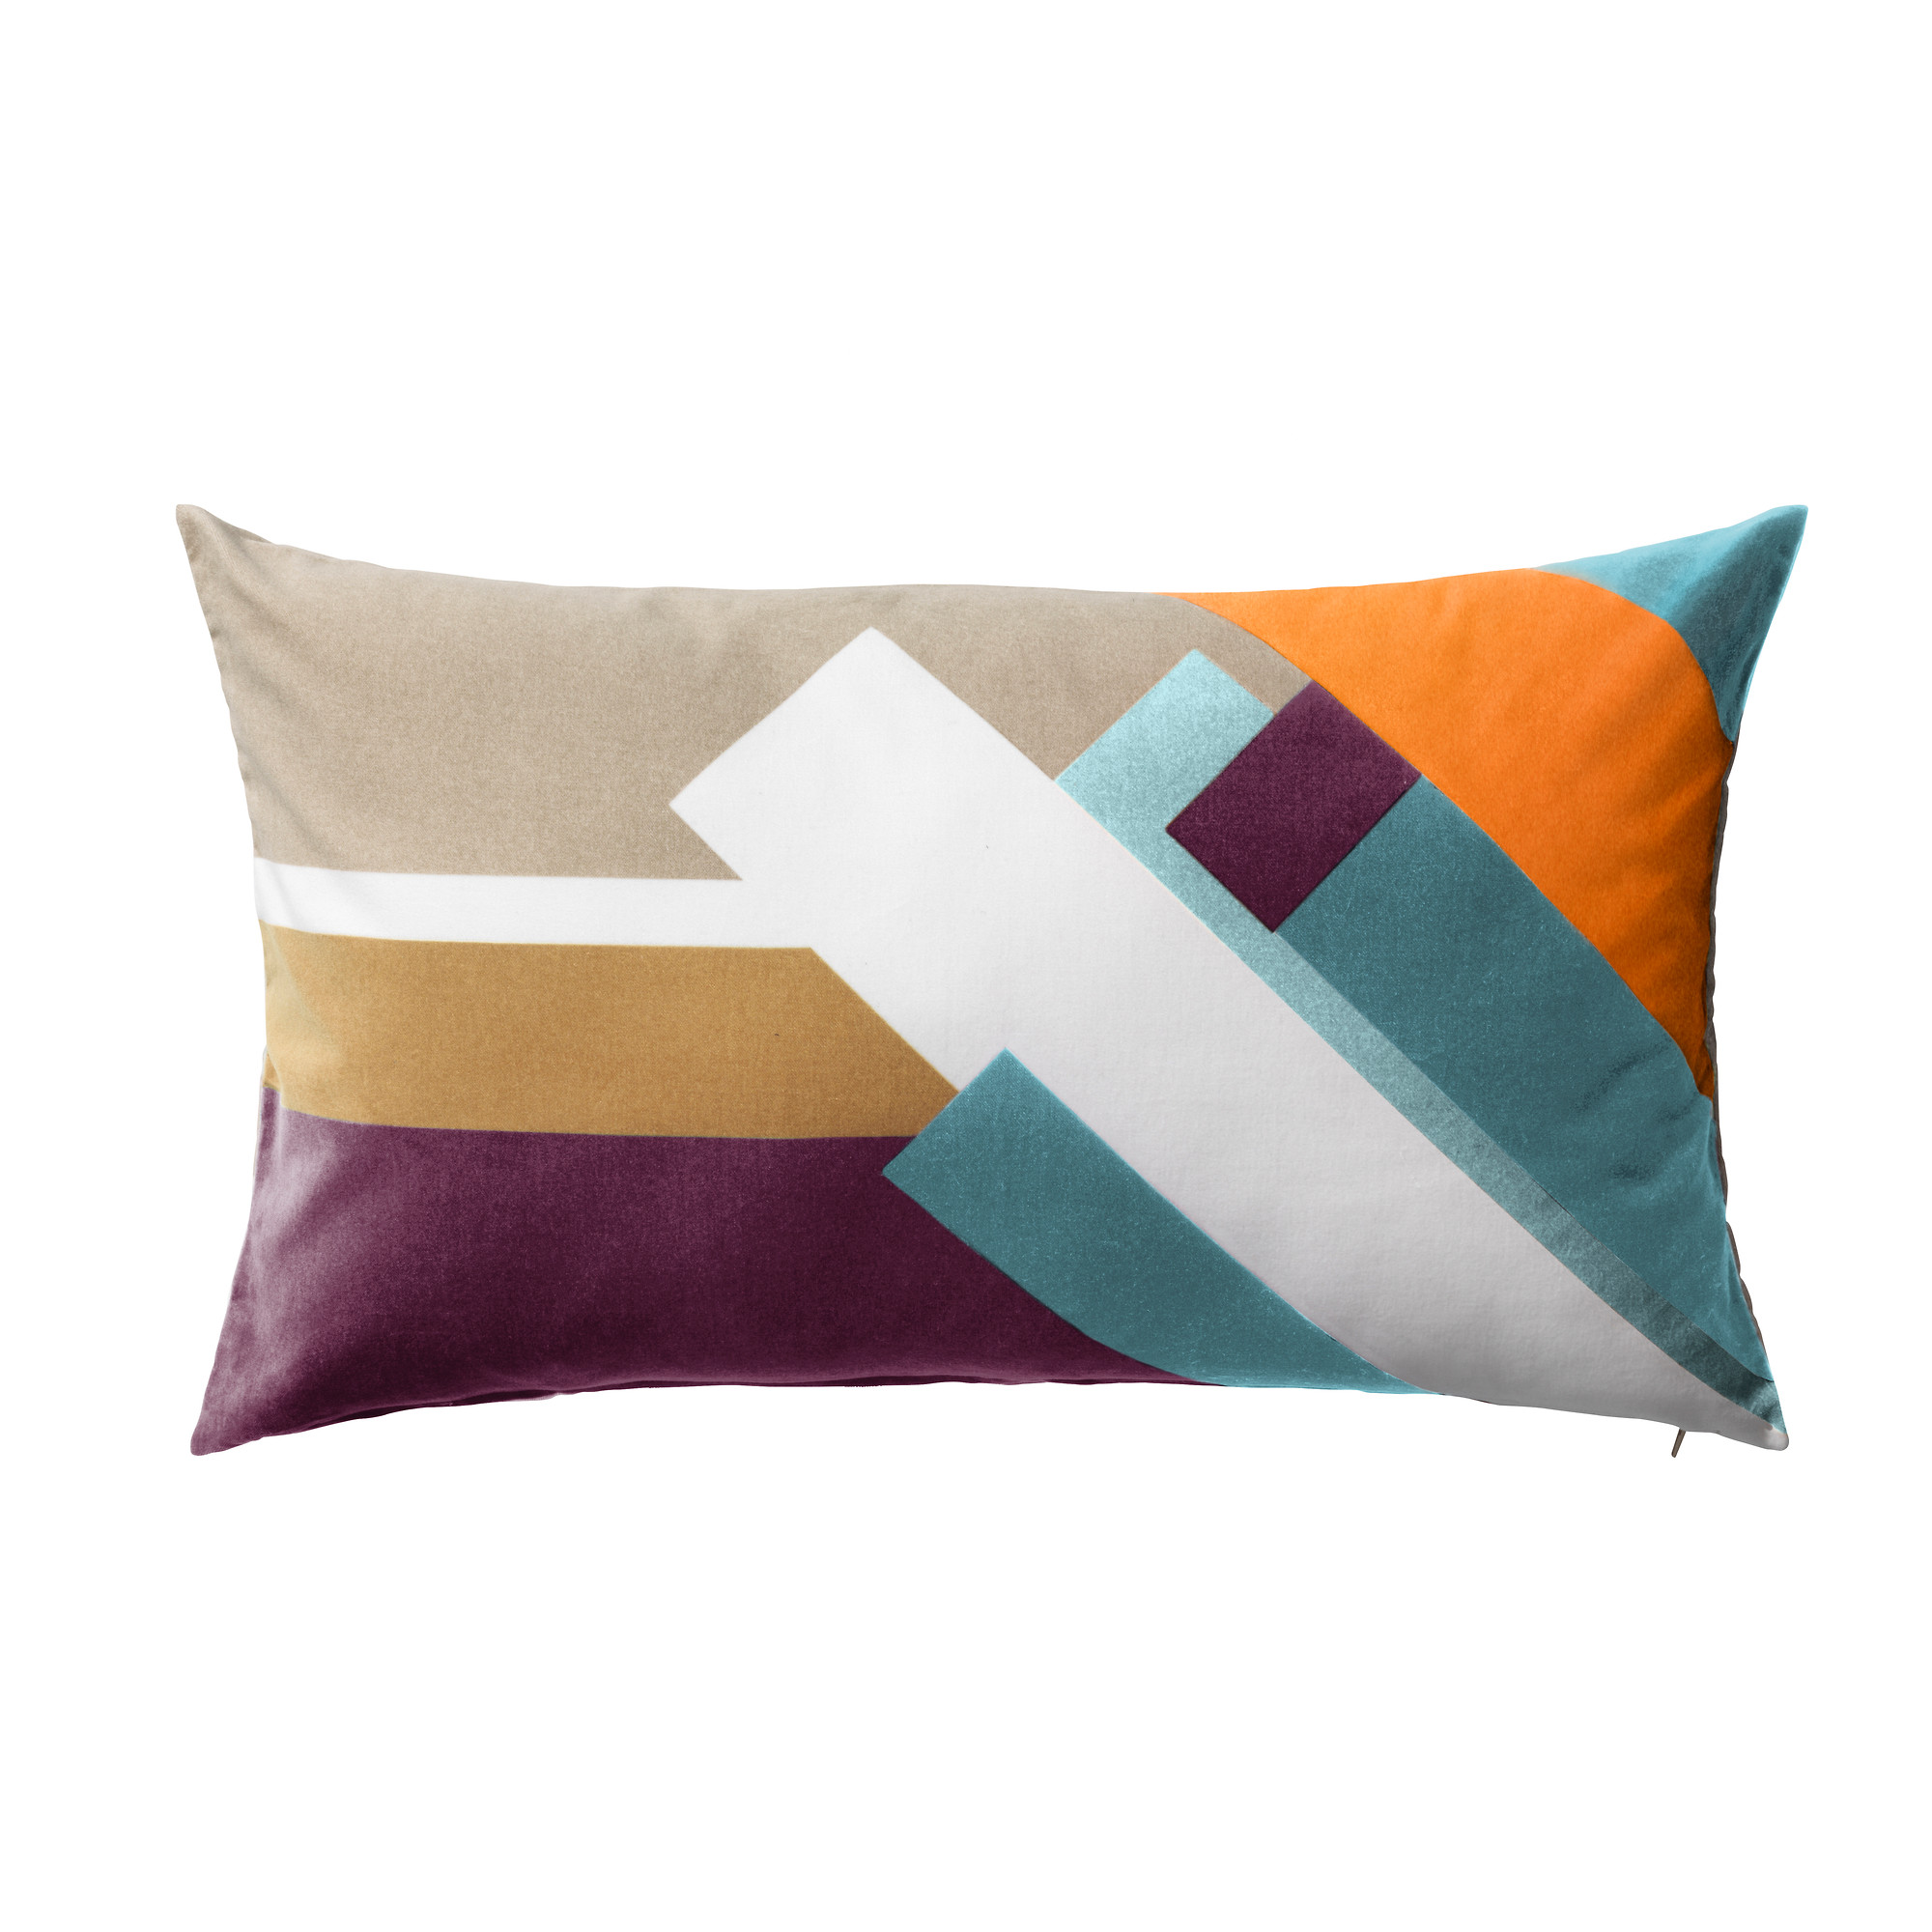 Ikea Decorative Pillows | Bohemian Throw Pillows | Decorative Pillow Covers